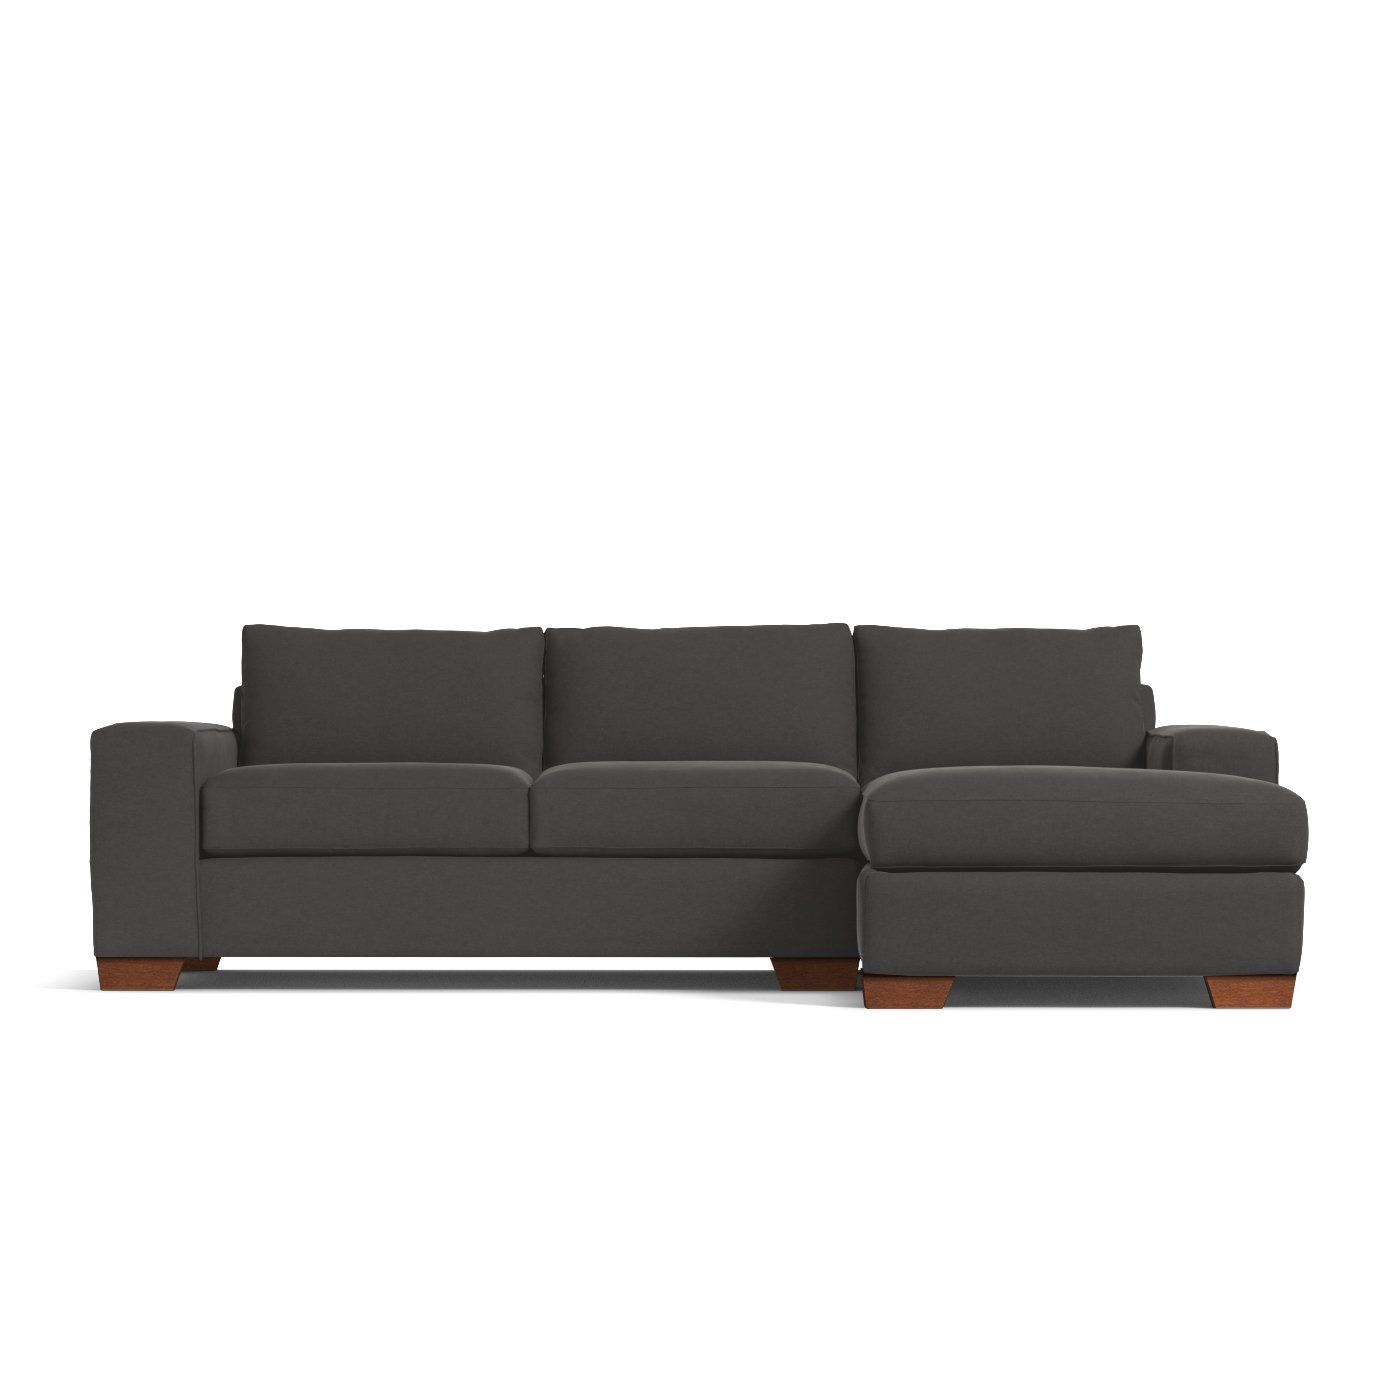 The melrose 2 piece sleeper sectional sofa features a bold contemporary look with wide track arms a low rise design and a full size sleeper sofa bed